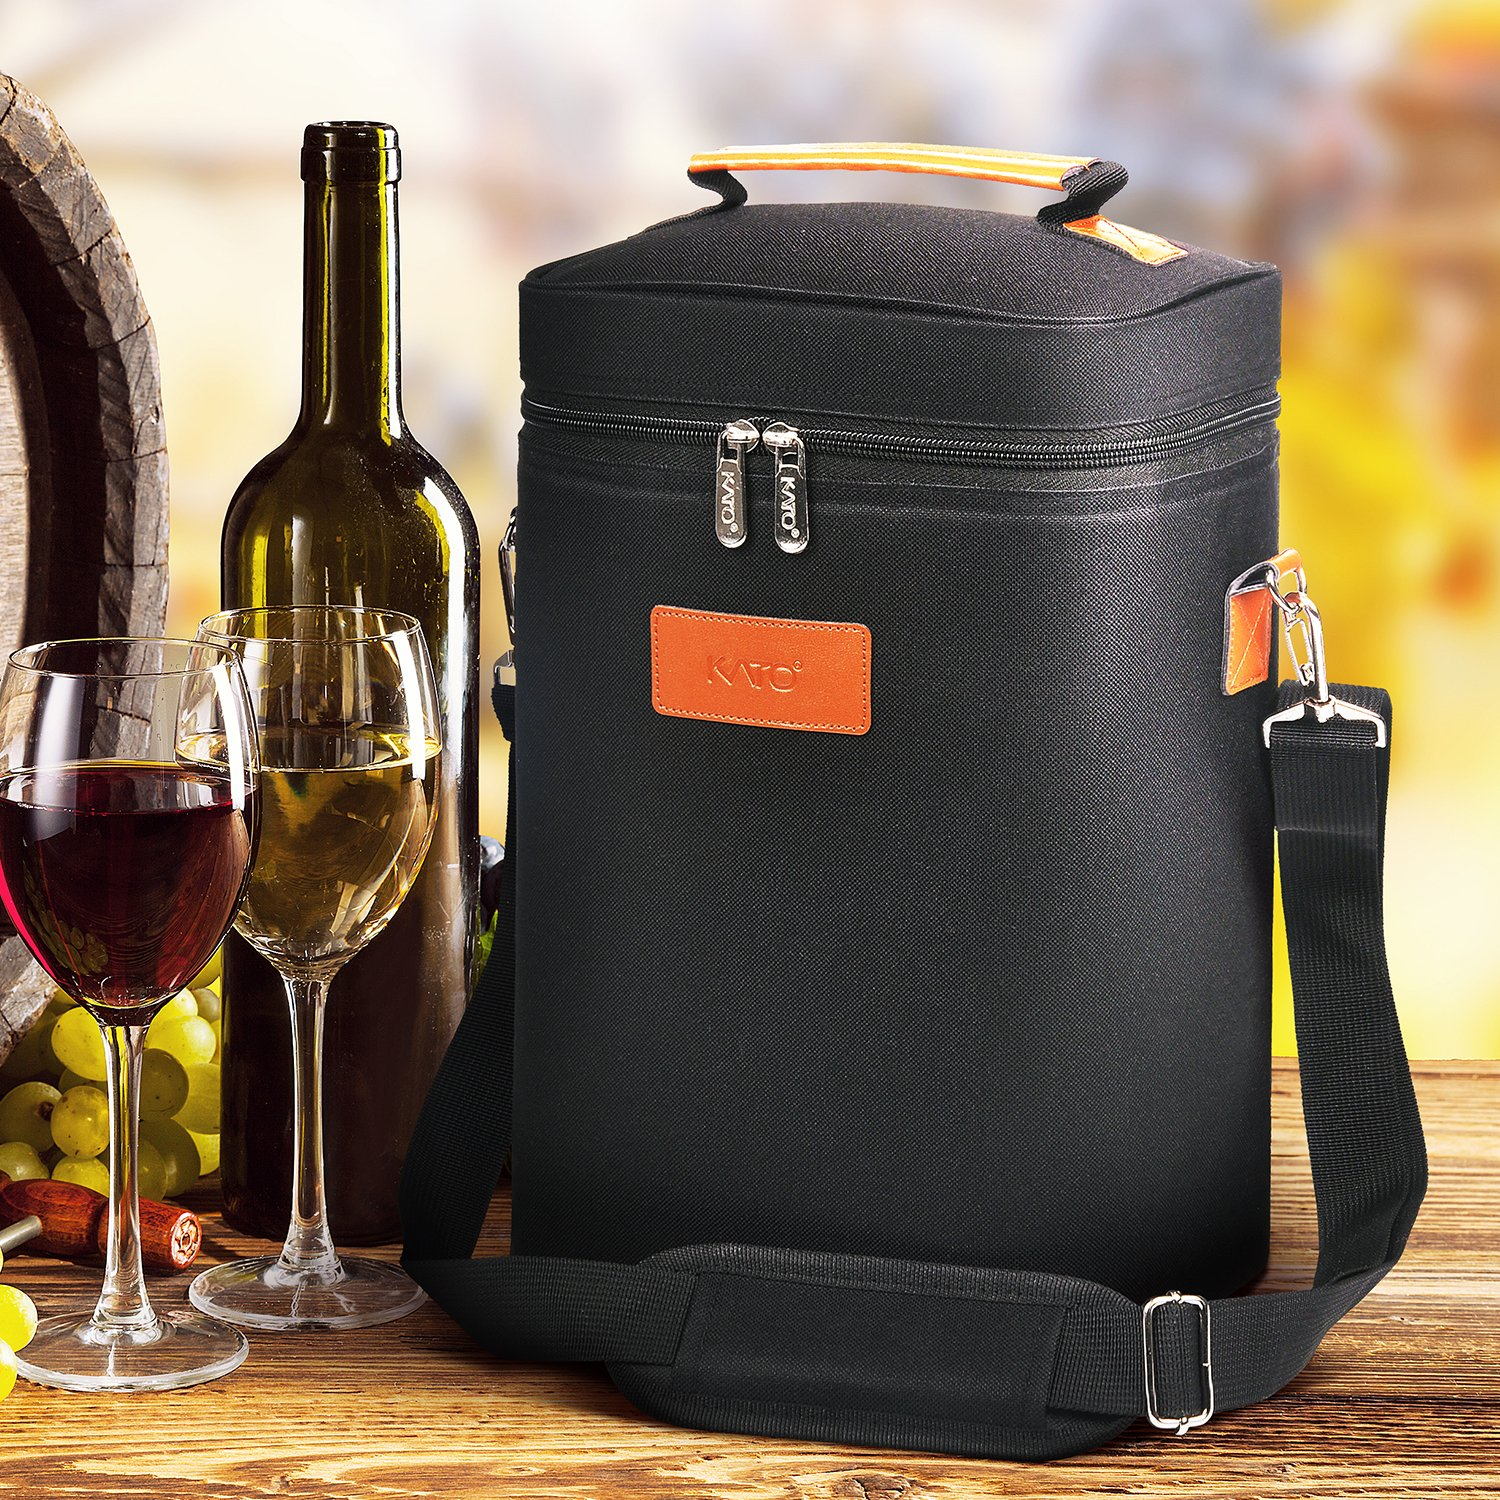 Kato Insulated Wine Carrier Bag - 4 Bottle Travel Padded Wine Carrying CoolerTote with Handle and Shoulder Strap, Great Wine Lover Gift, Black by Kato (Image #7)